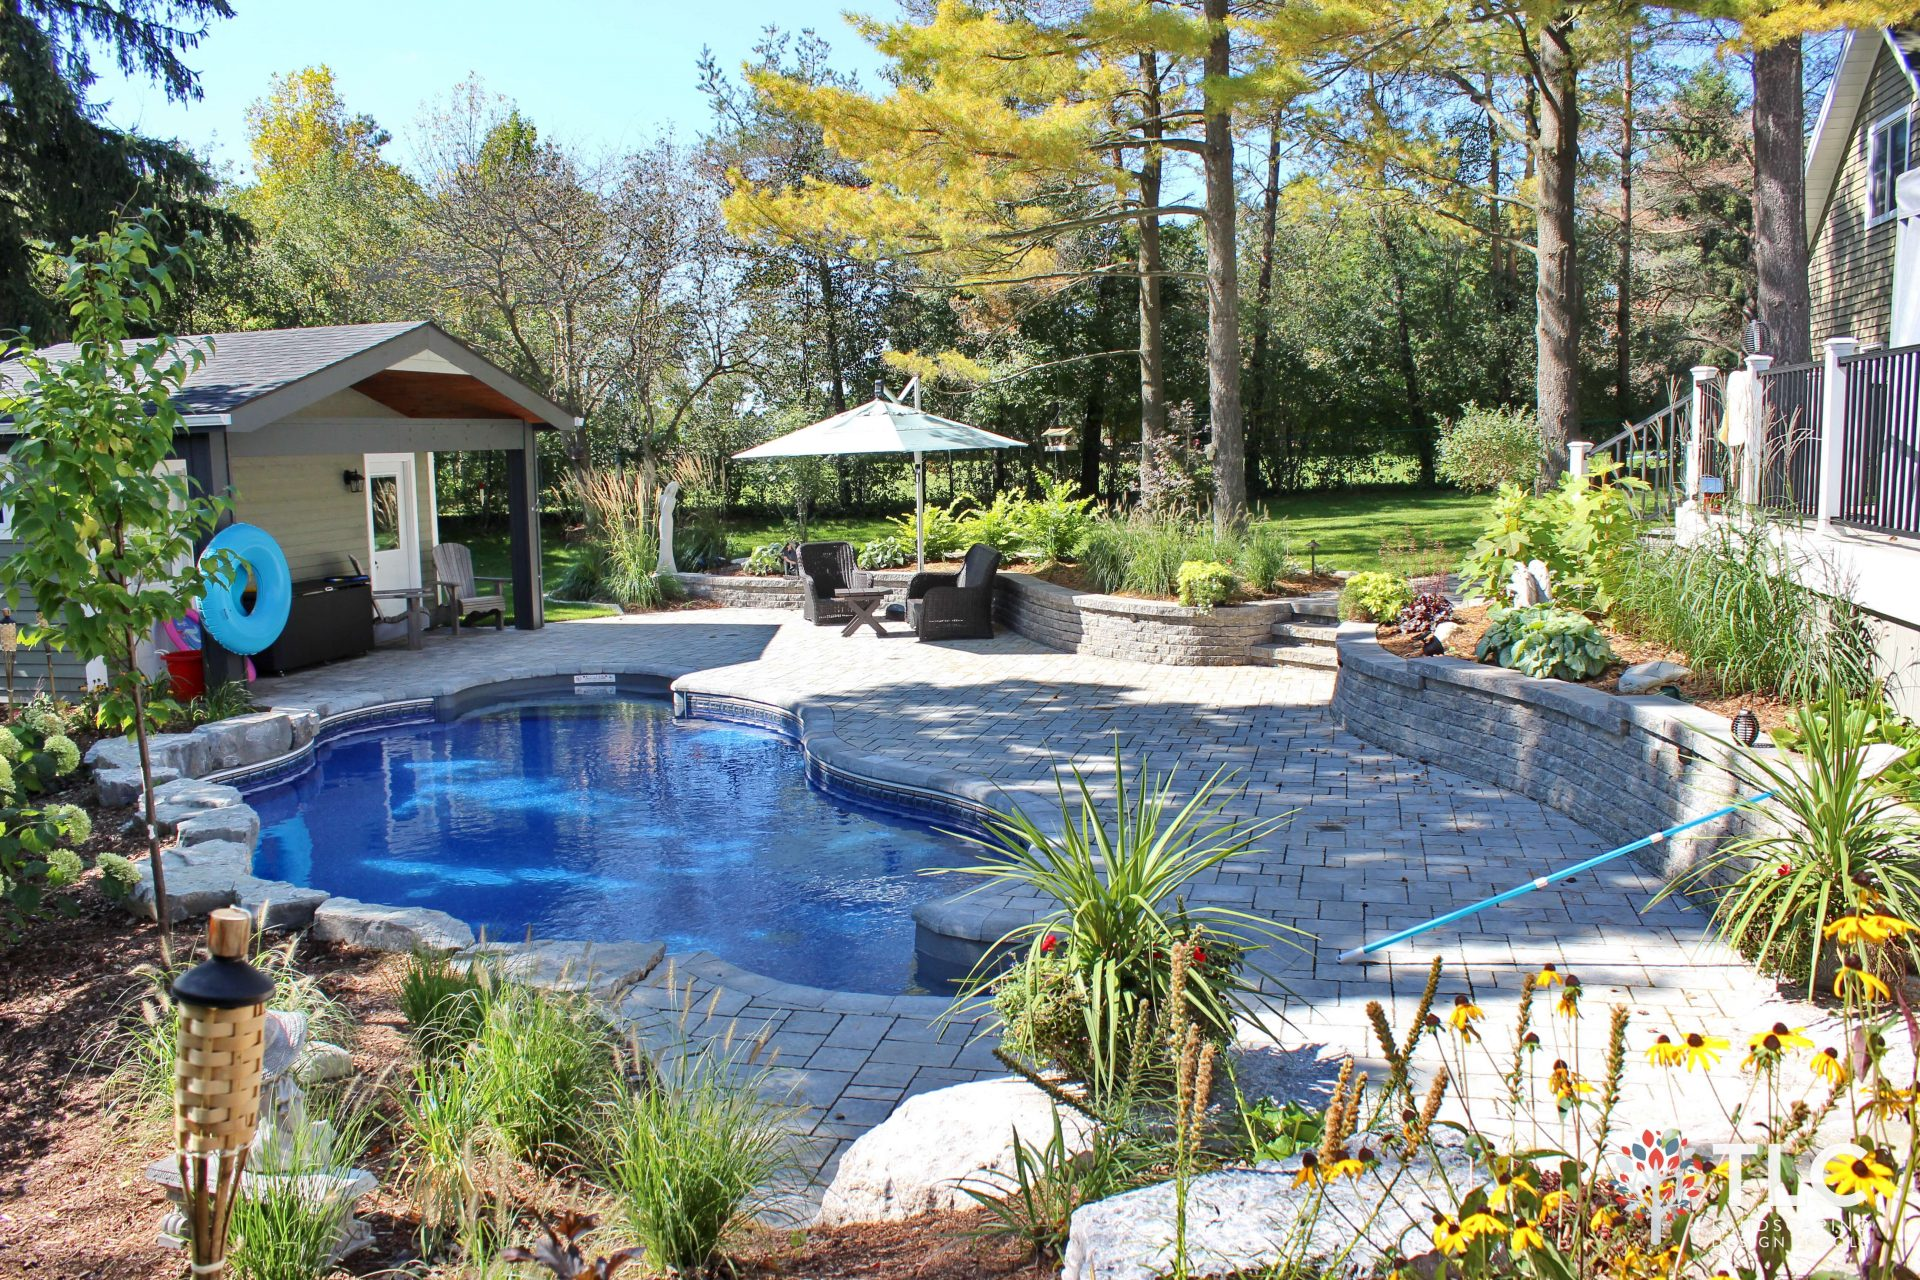 Side view of backyard featuring pool, lounge area and pool house